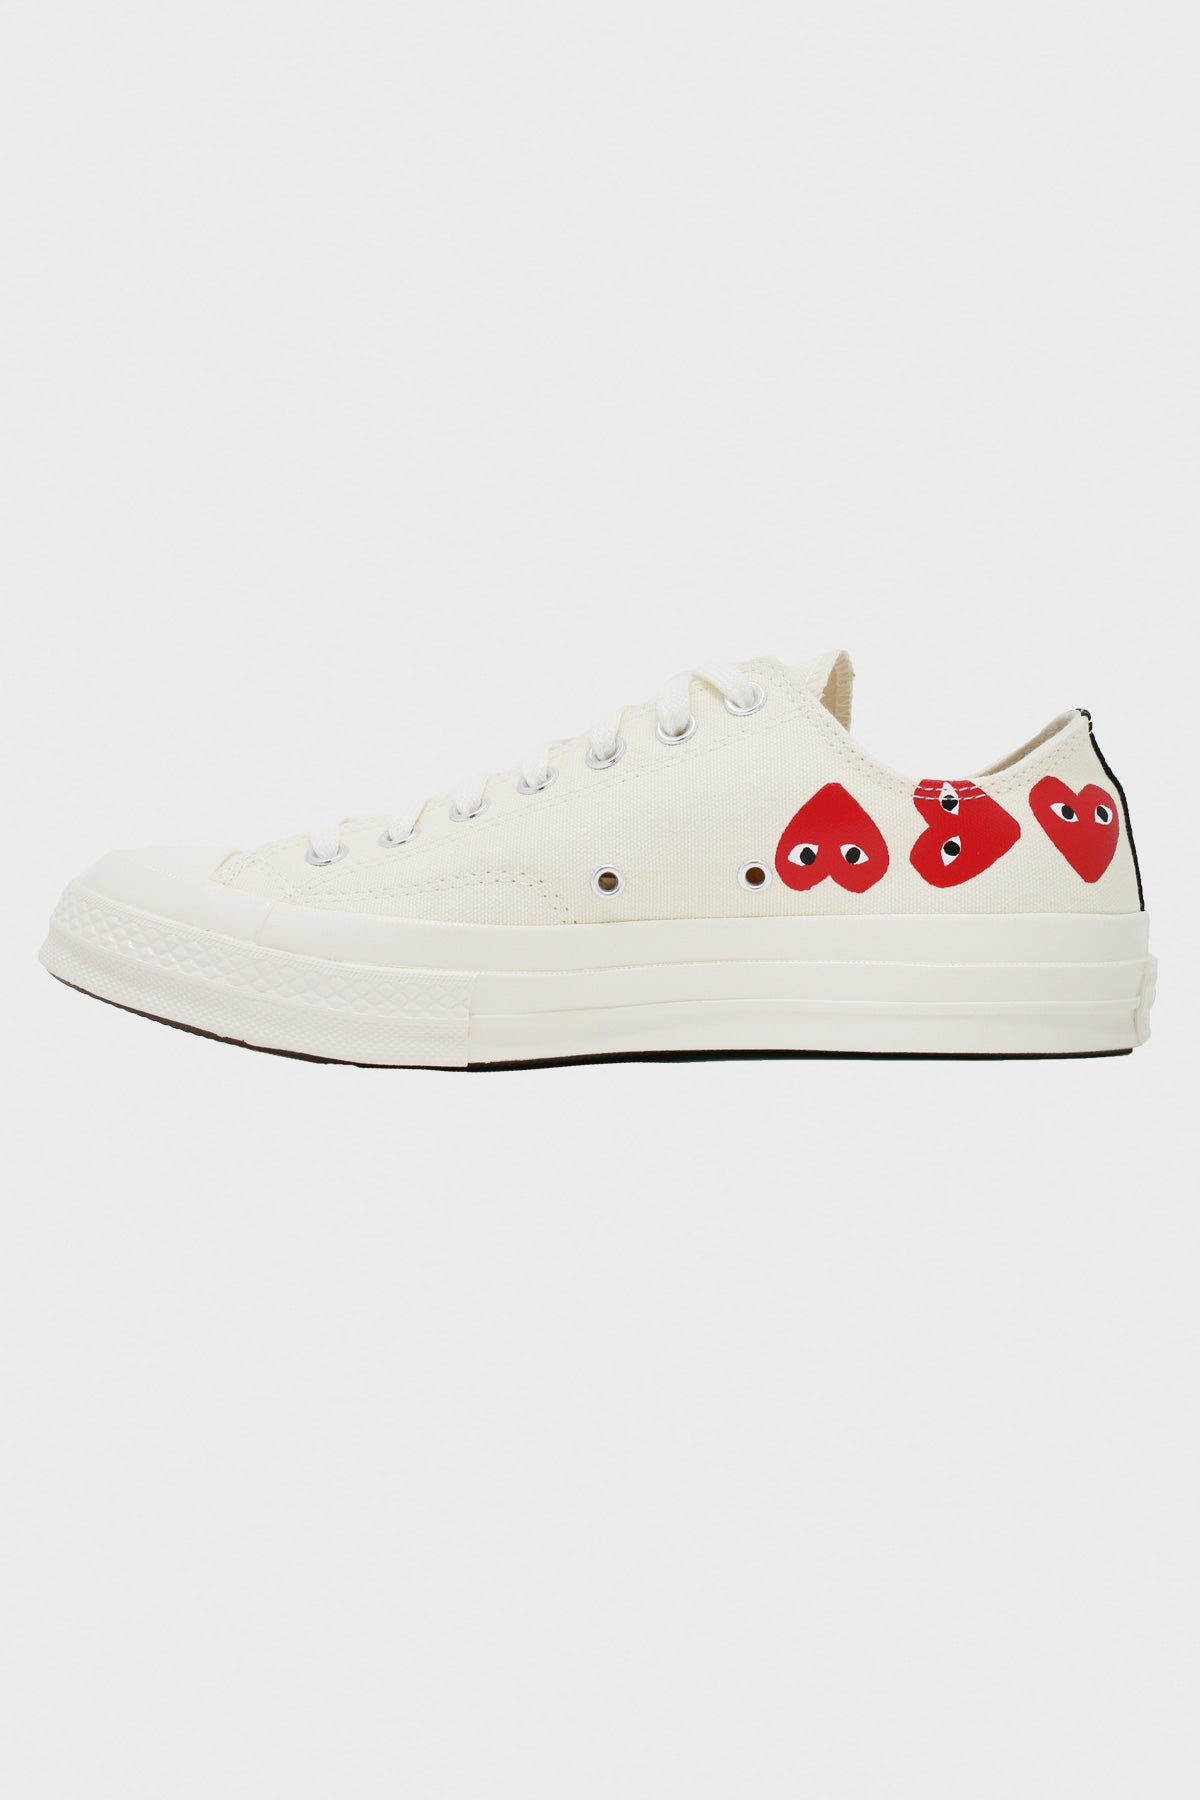 Comme des Garçons PLAY - CdG PLAY x Converse Chuck Taylor Lo - Off White - Canoe Club